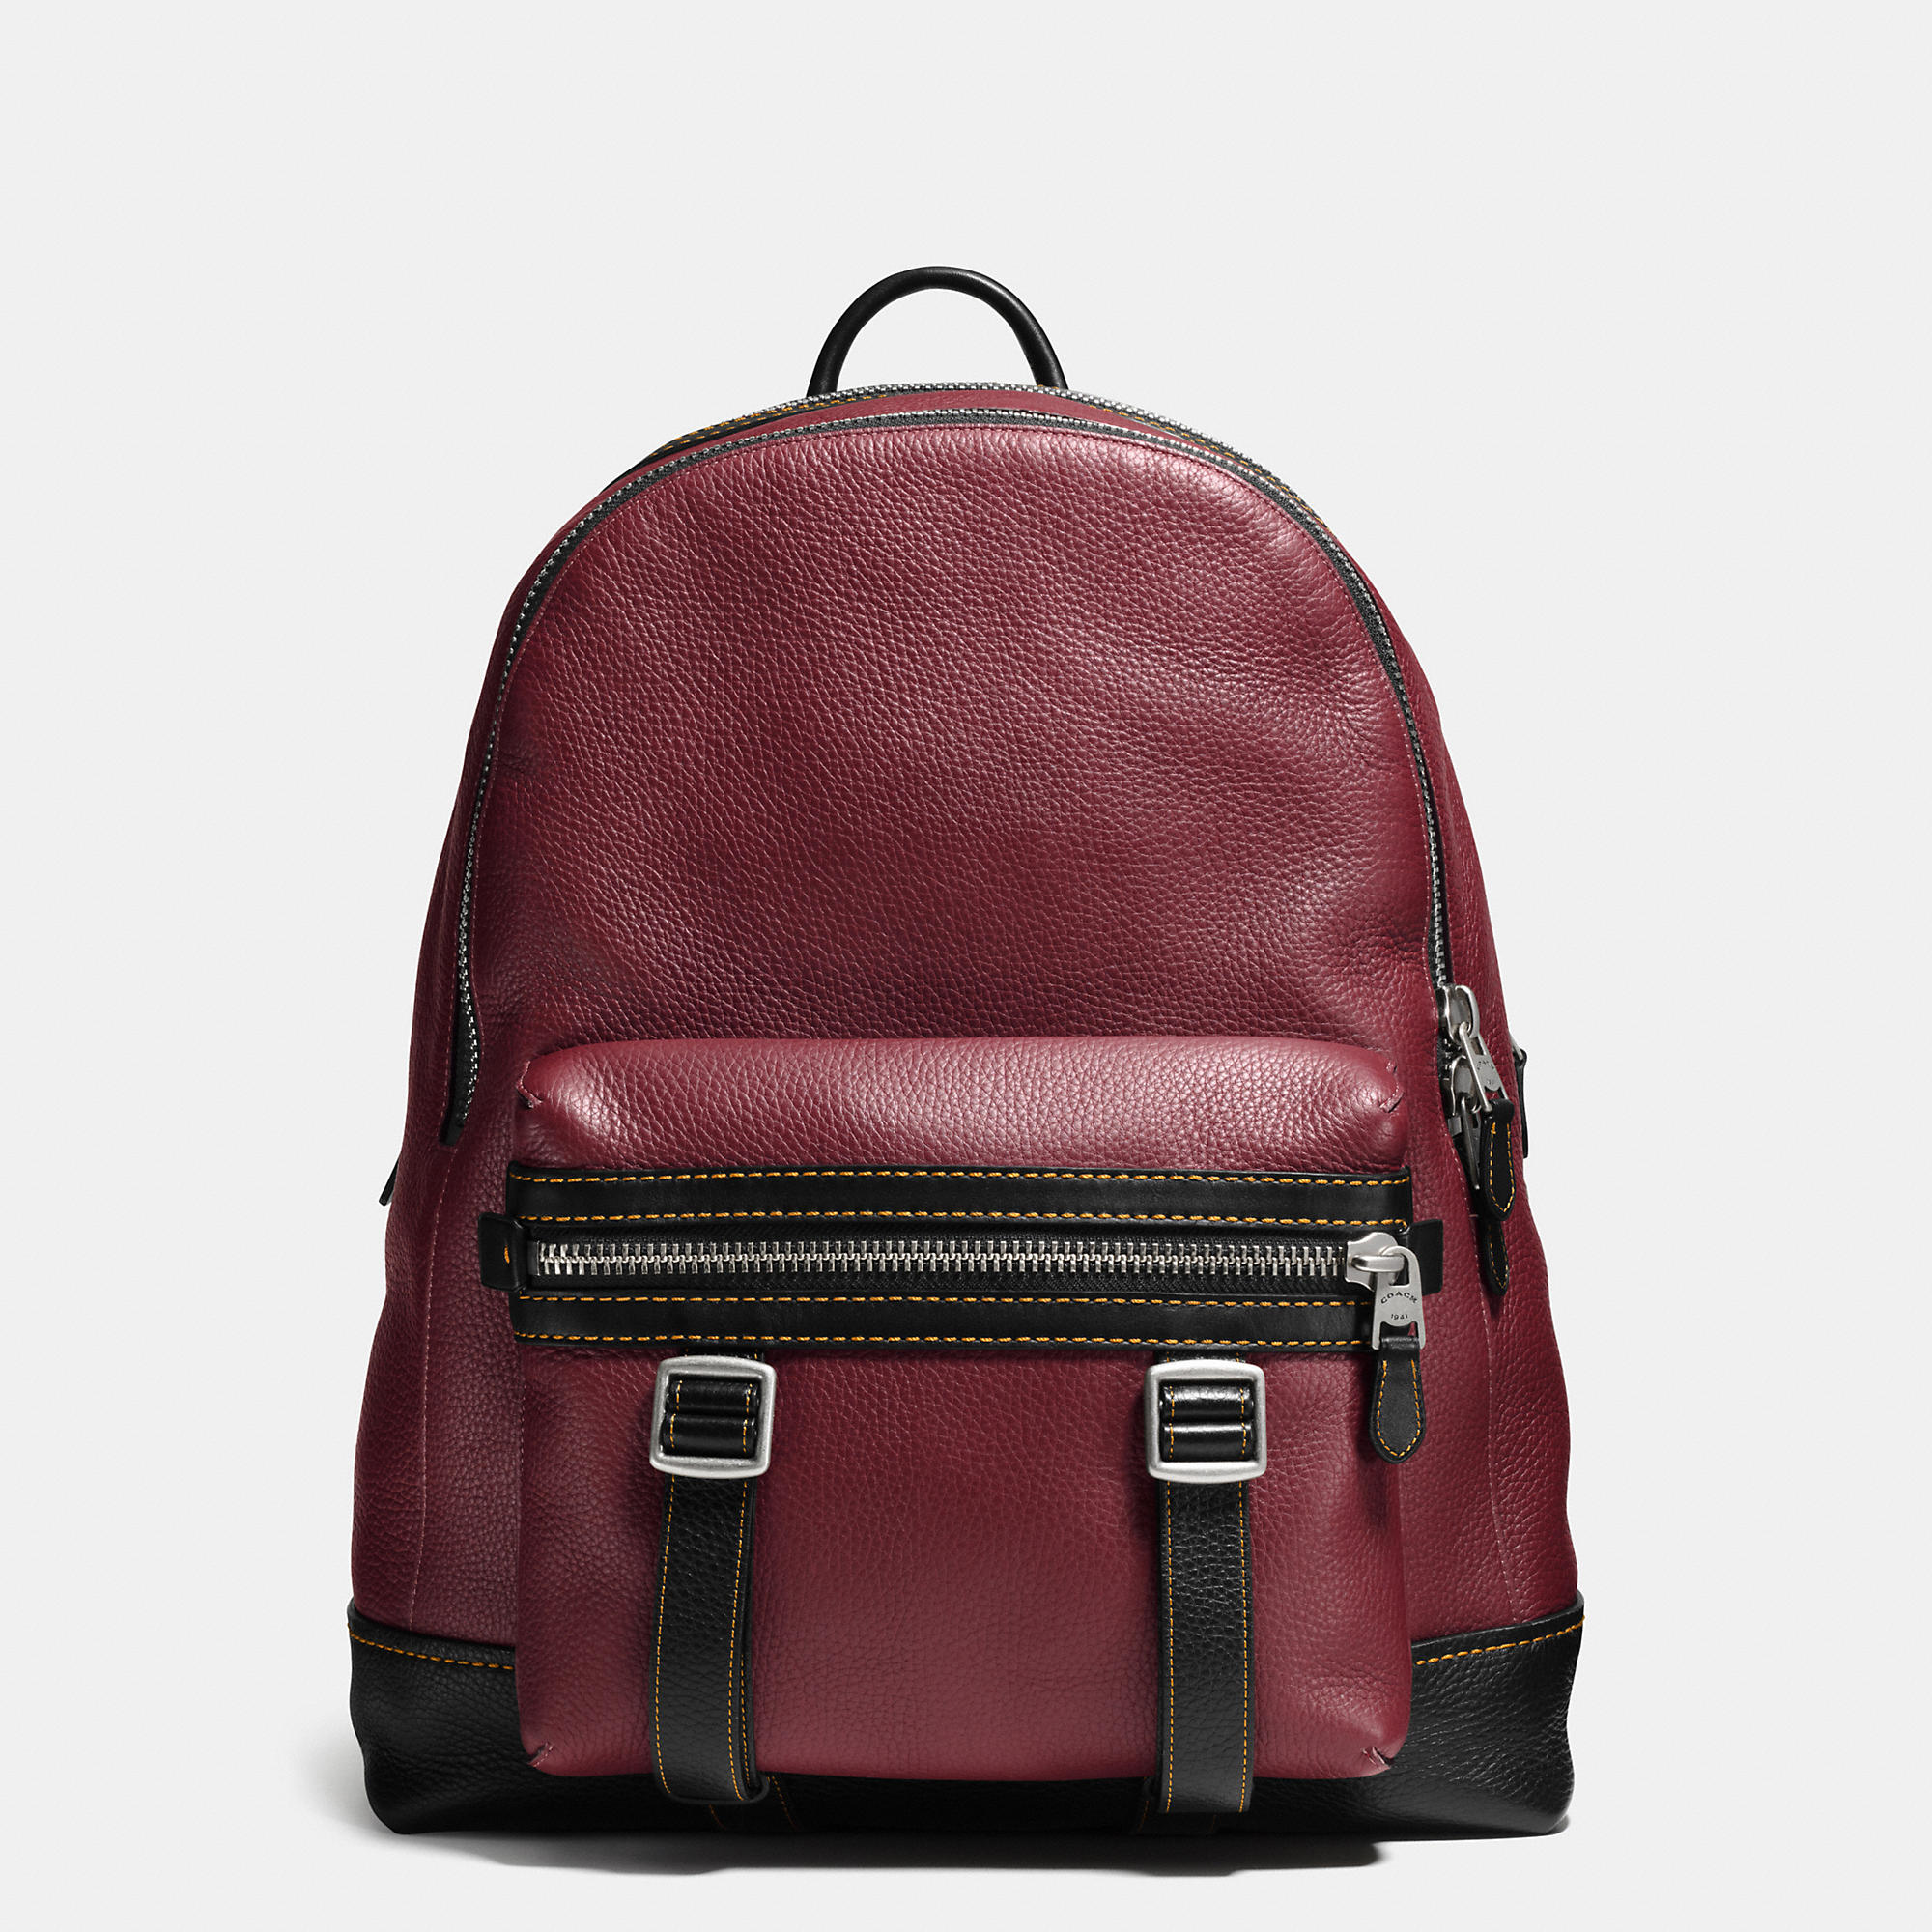 Coach Flag Backpack In Pebble Leather